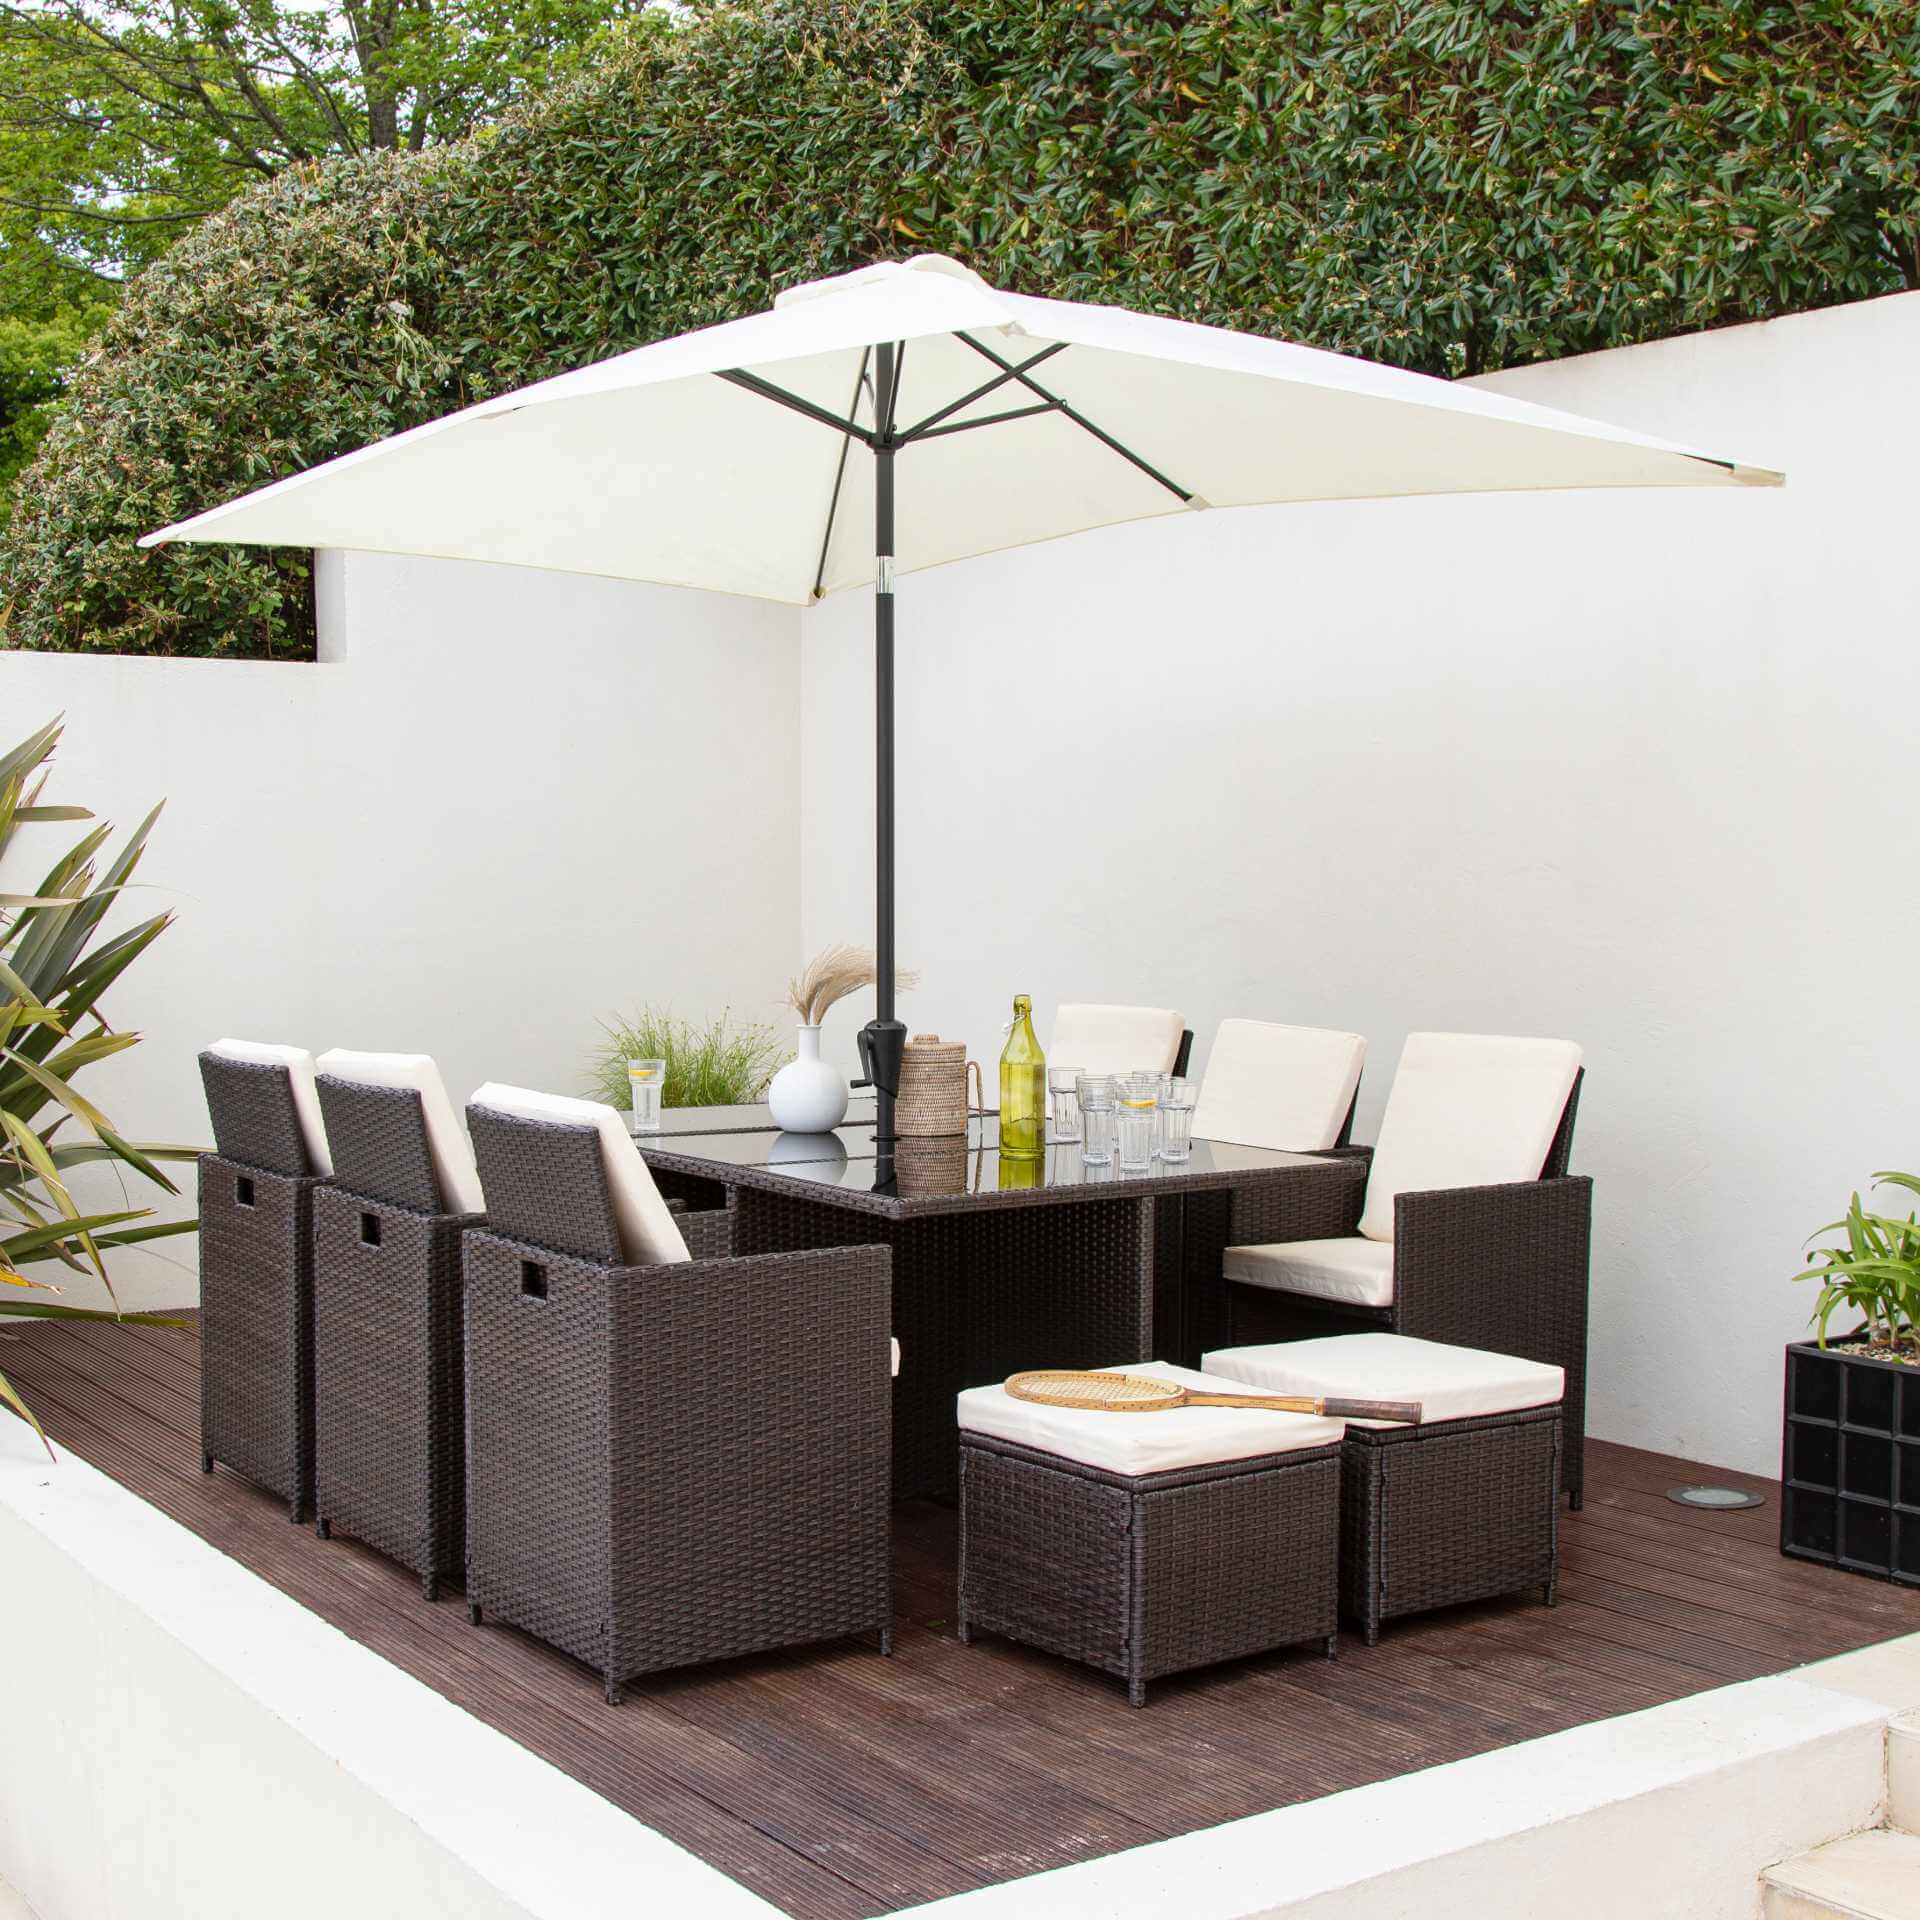 10 Seater Rattan Cube Outdoor Dining Set with Parasol - Mixed Brown Weave